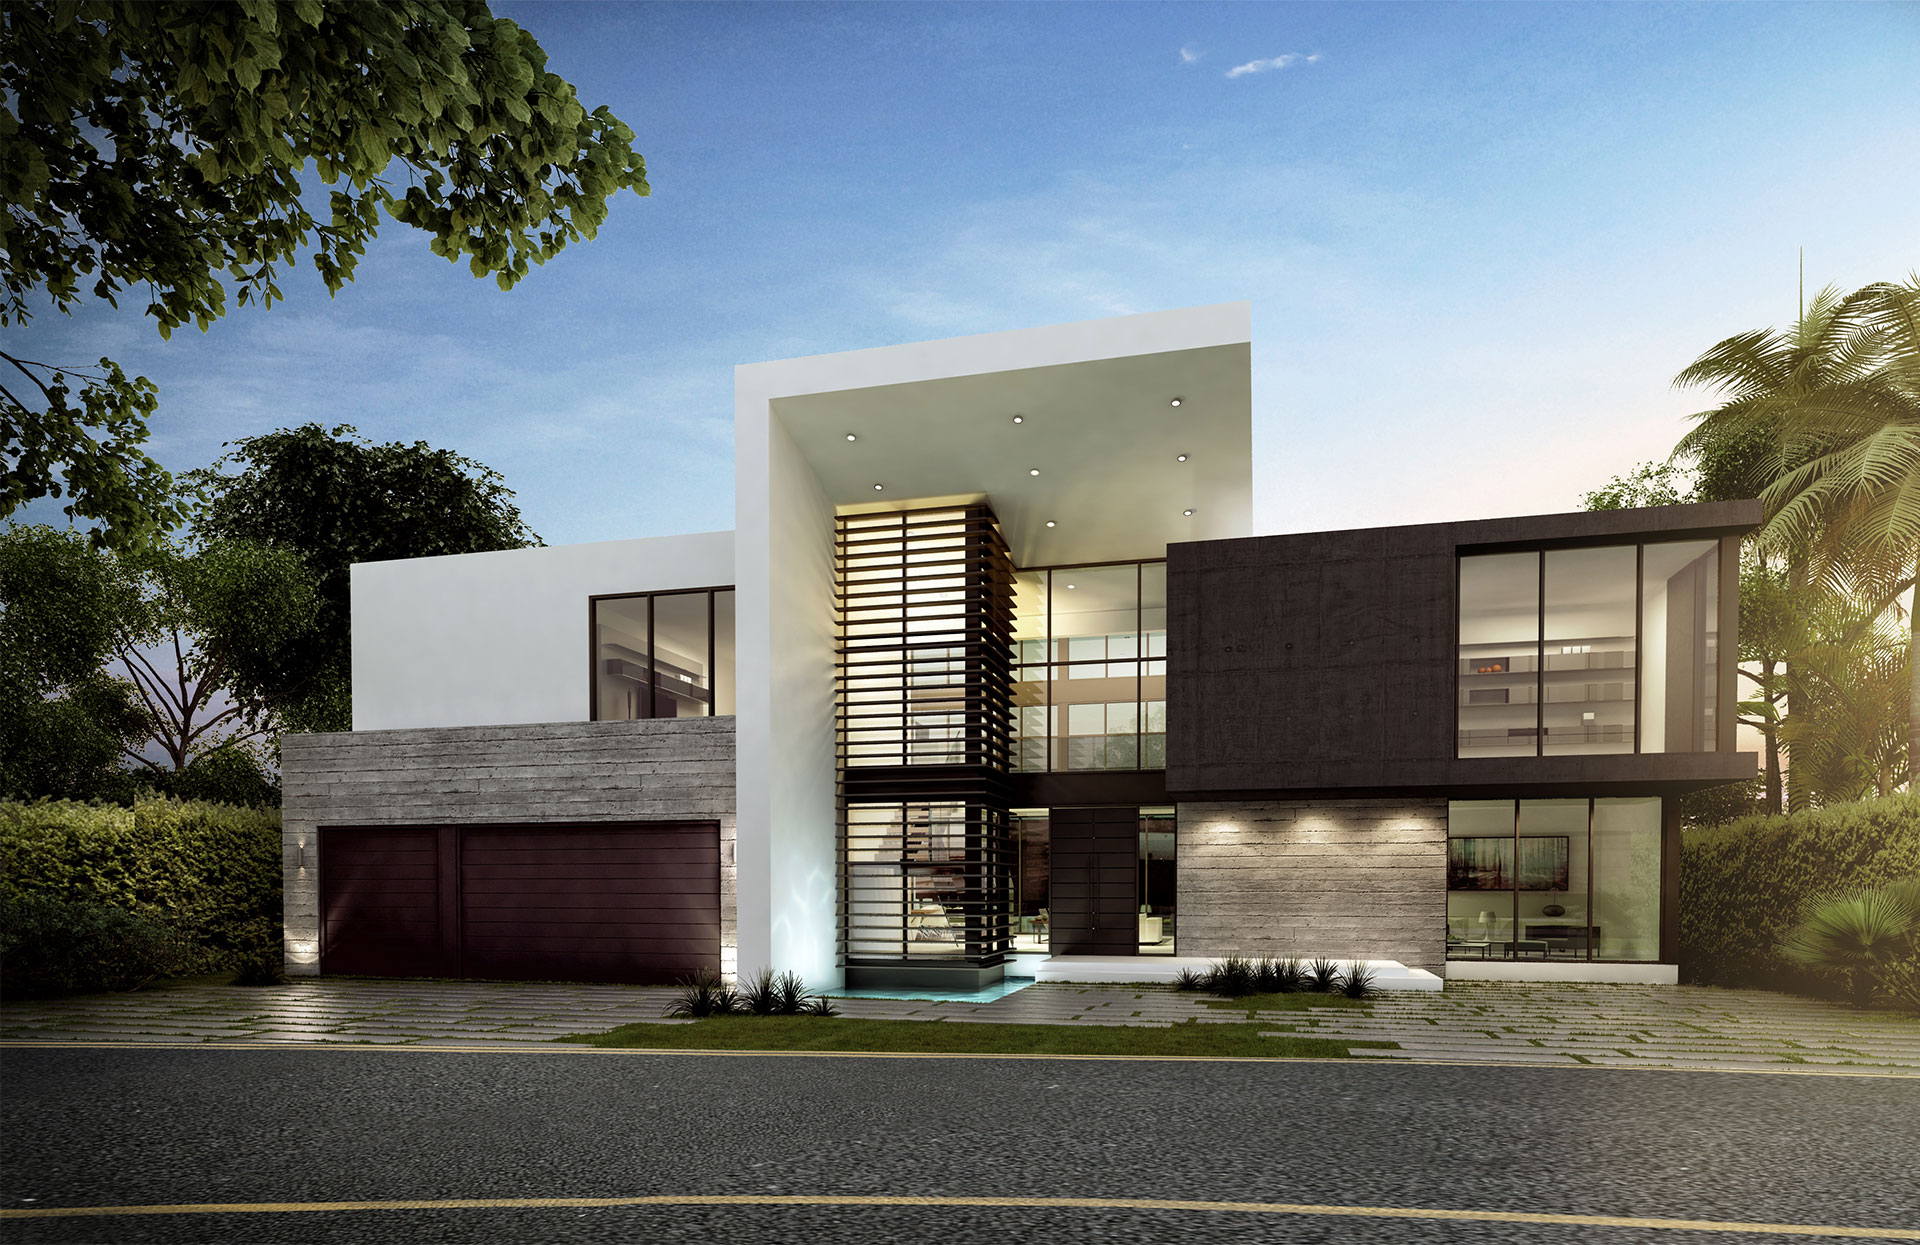 Architecture project in Mola Ave, Fort Lauderdale